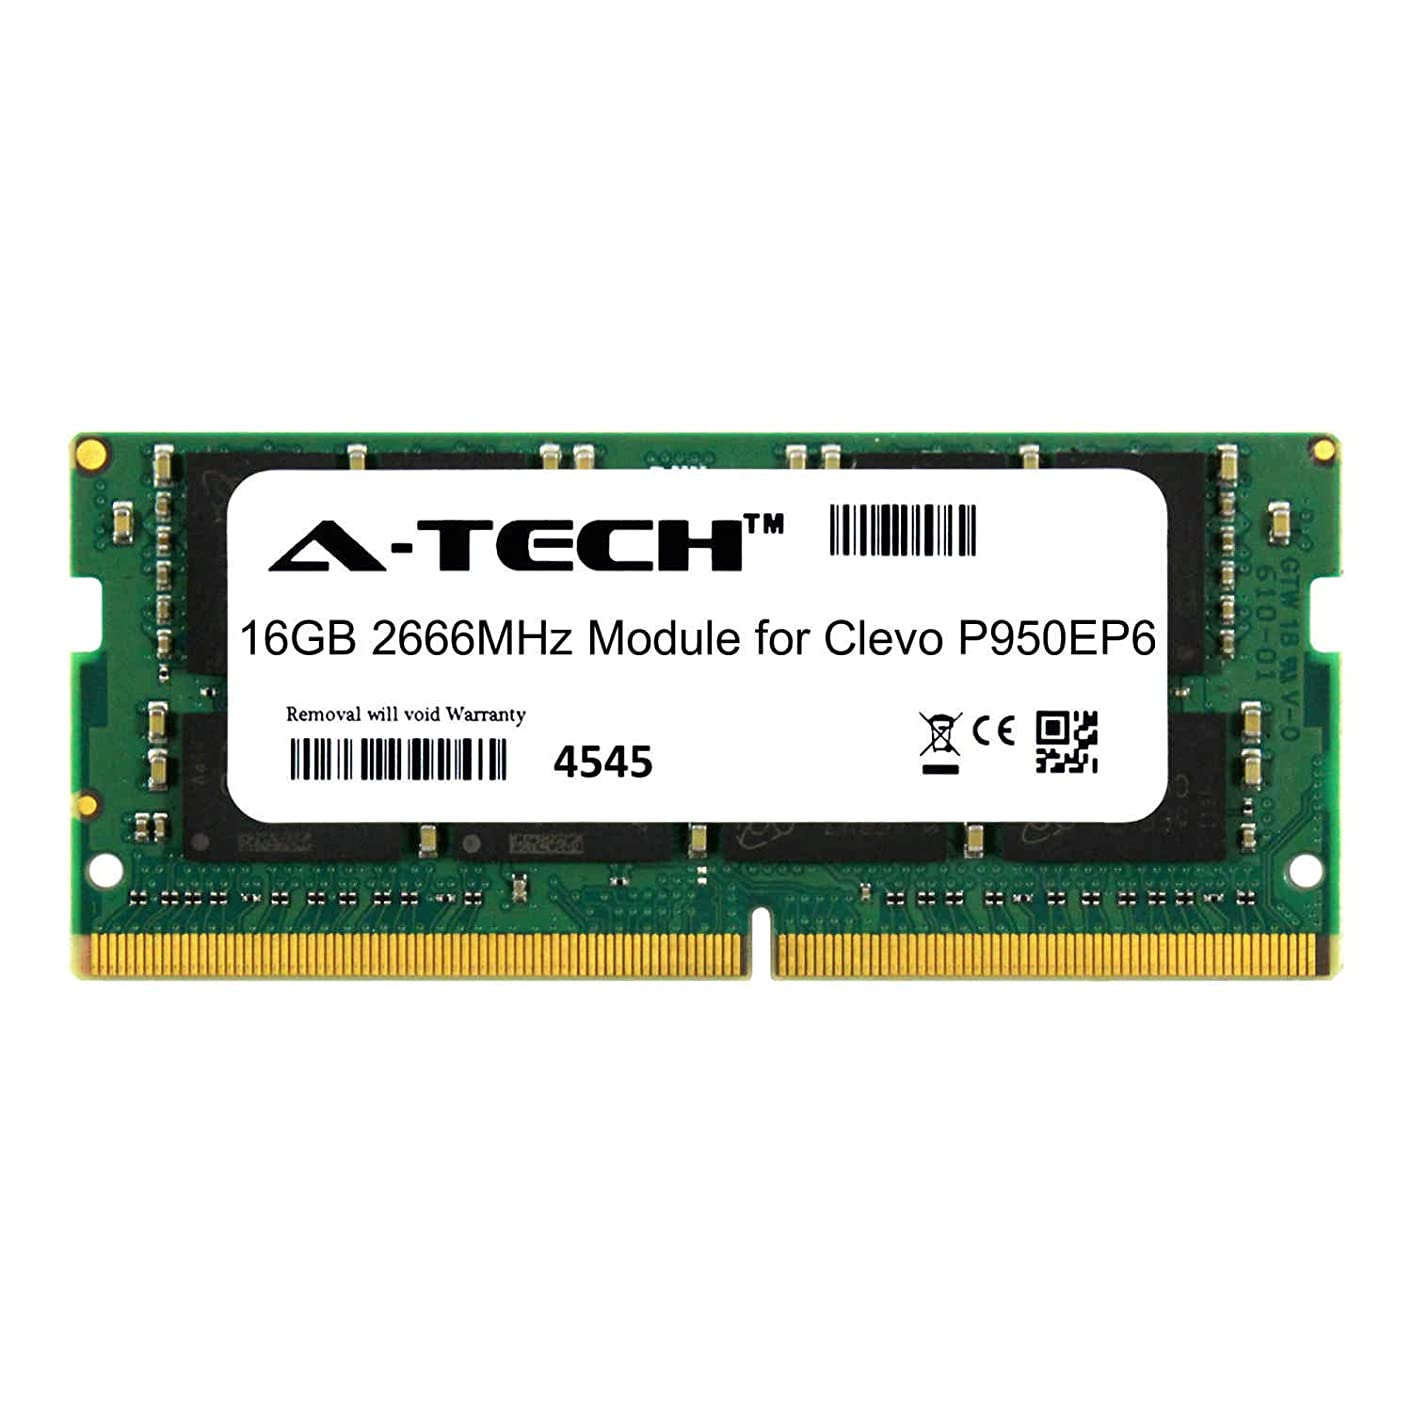 A-Tech 16GB Module for Clevo P950EP6 Laptop & Notebook Compatible DDR4 2666Mhz Memory Ram (ATMS390910A25832X1)